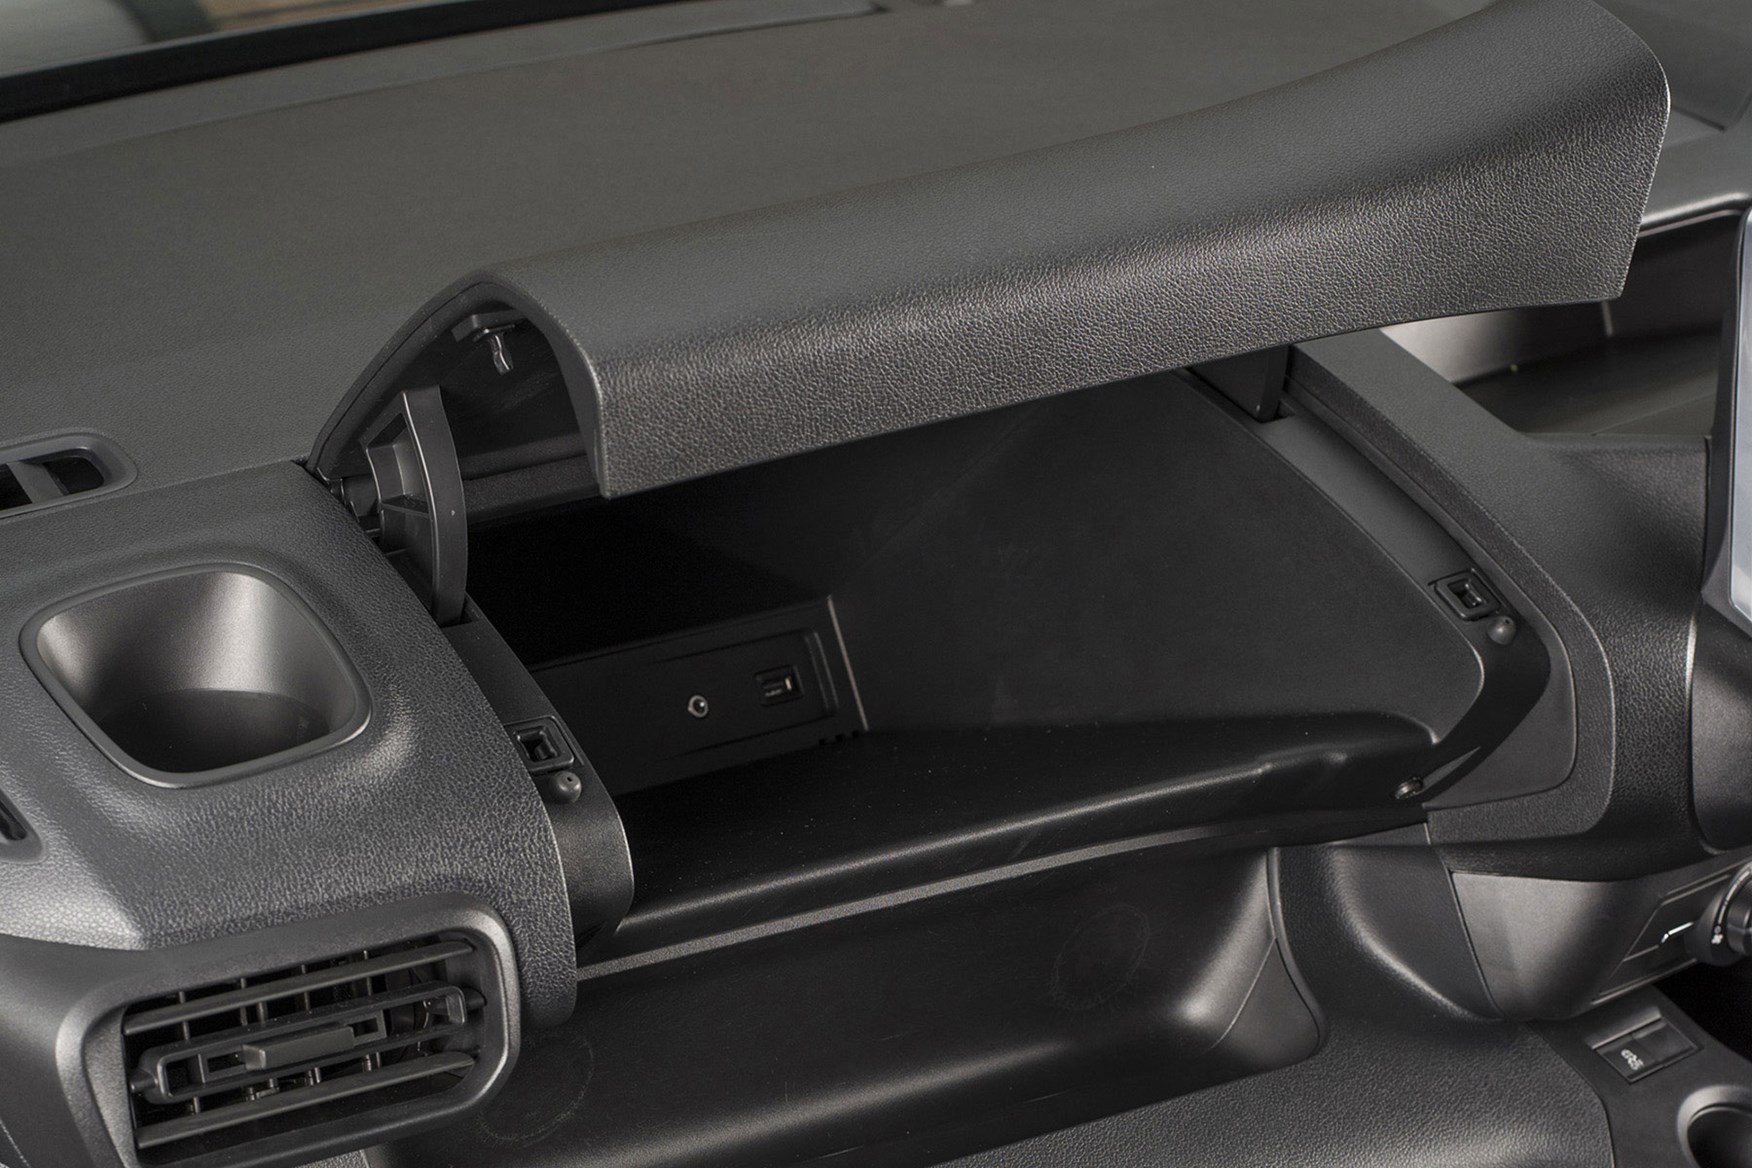 Vauxhall Combo 2019 review - glovebox with USB socket and aux-in connection